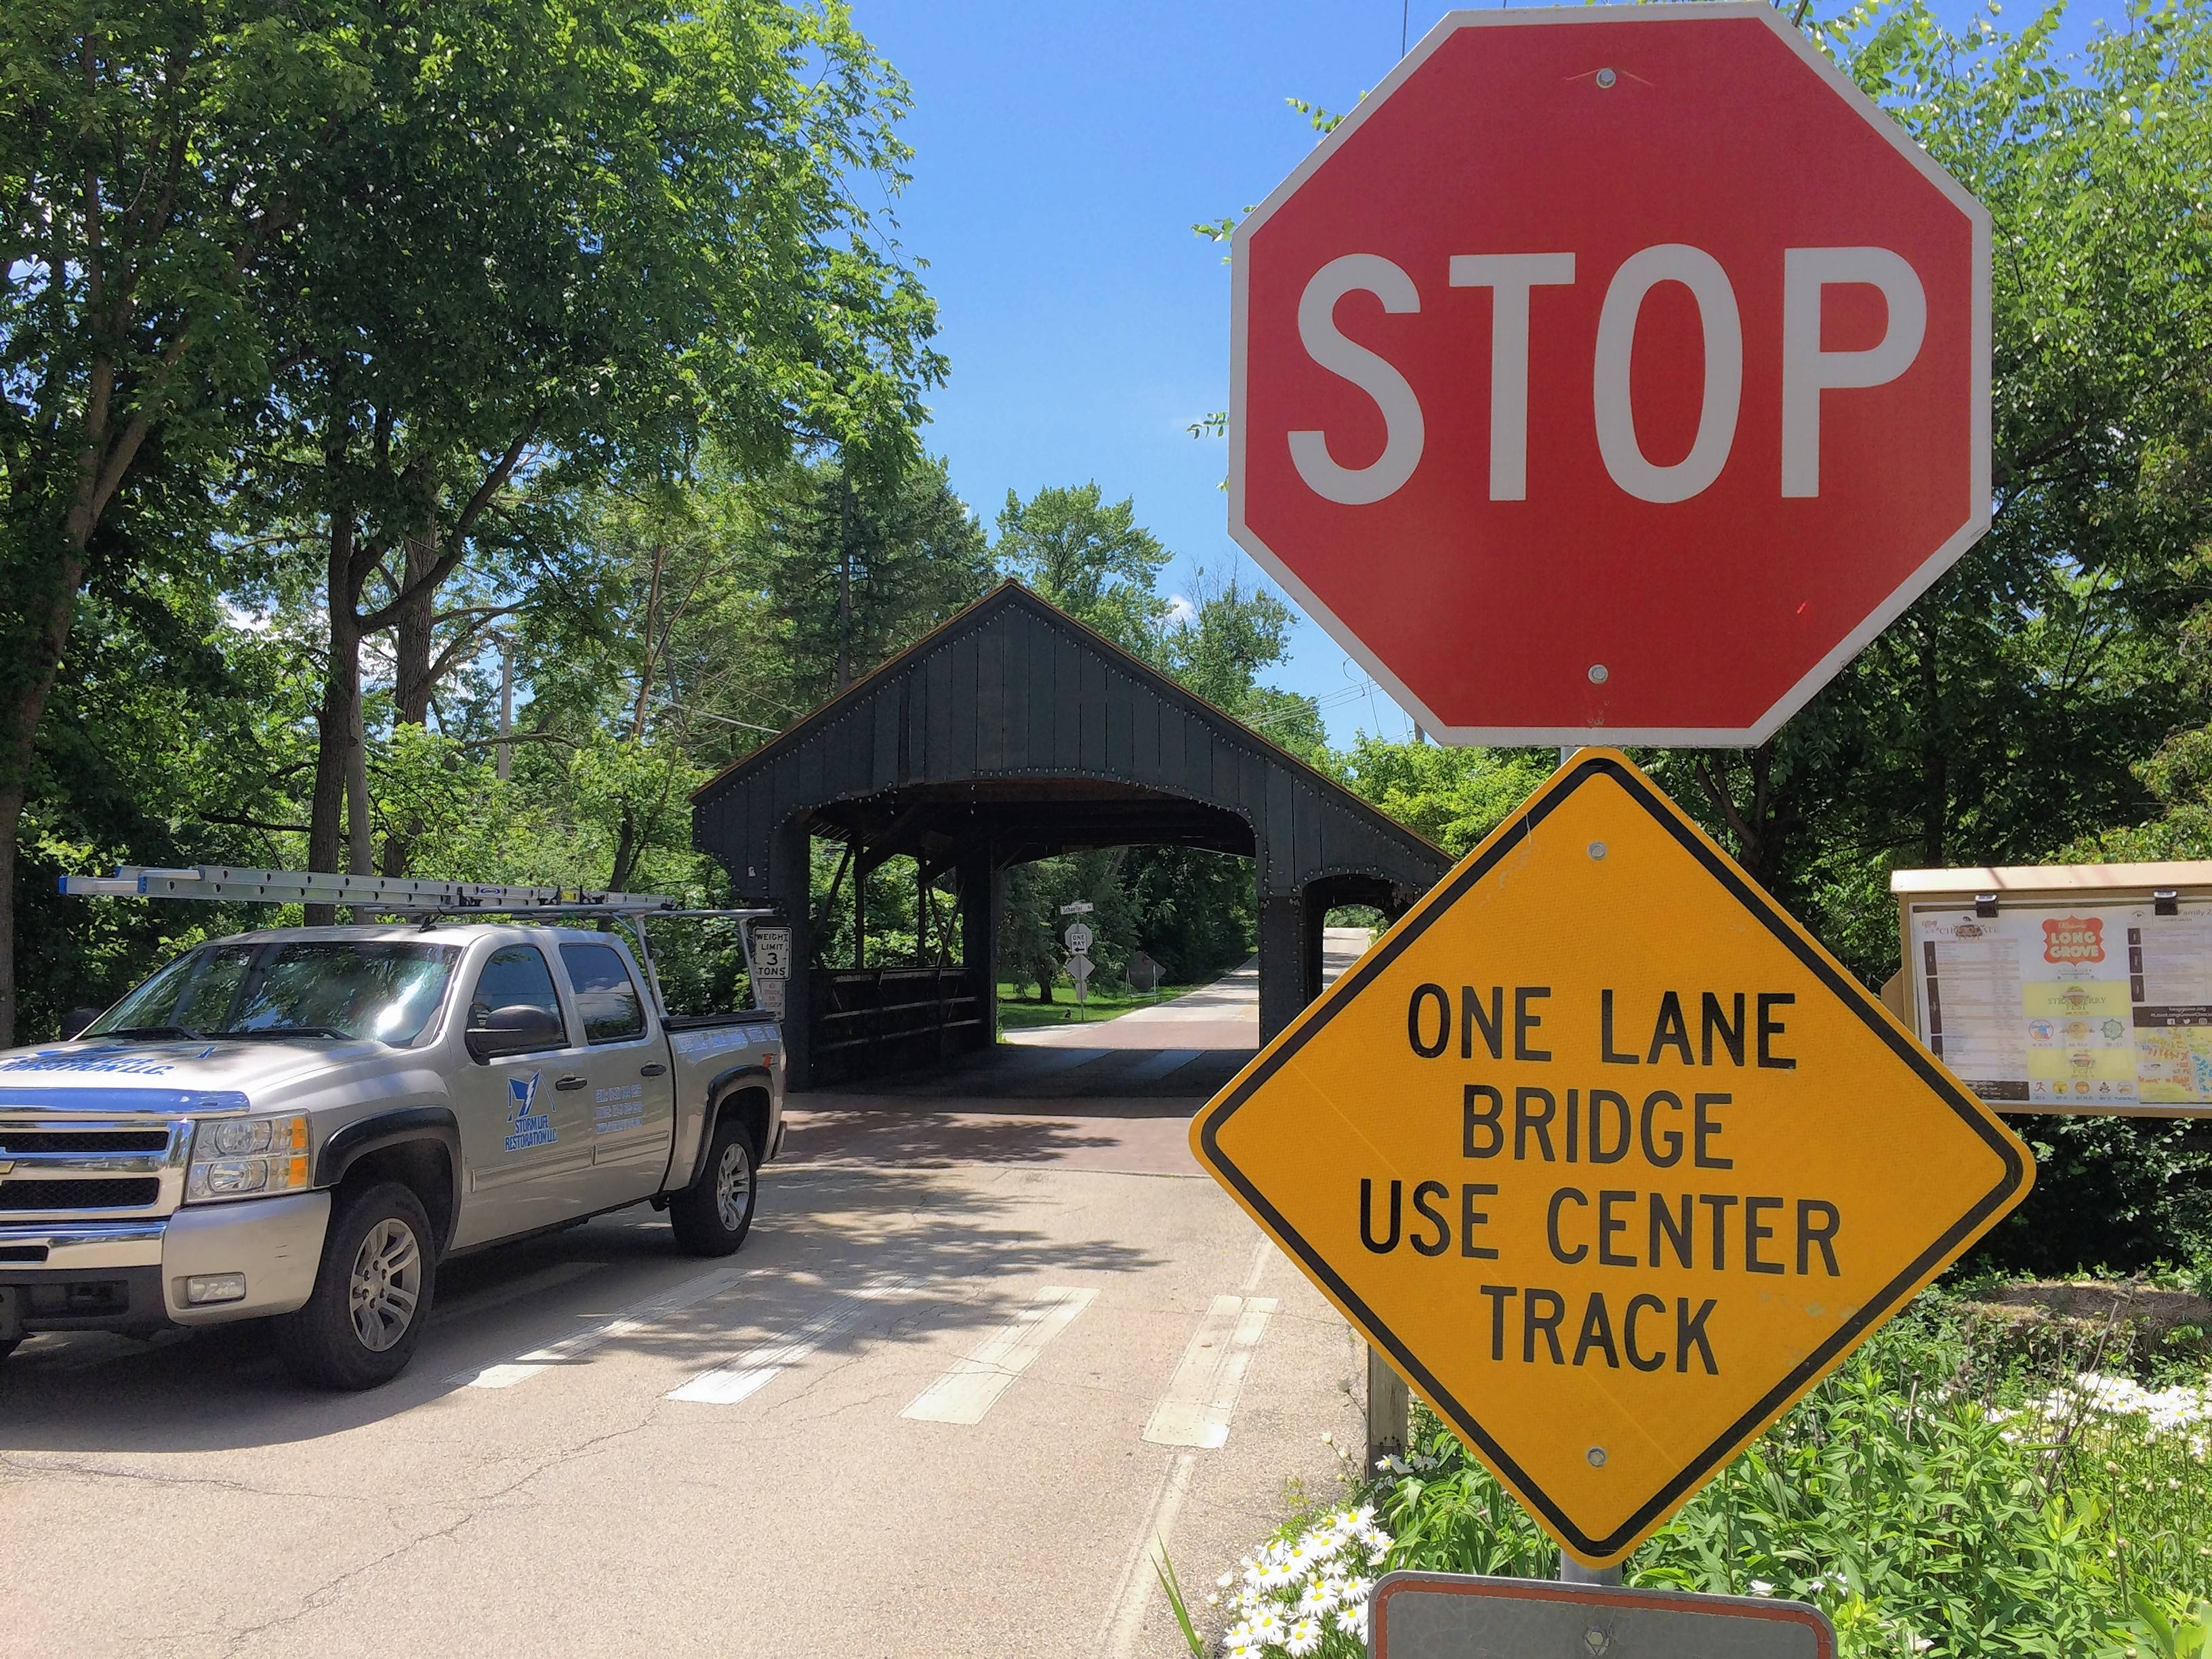 Built in 1906, the one-lane covered bridge on Robert Parker Coffin Road in Long Grove was added to the National Register of Historic Places on Friday